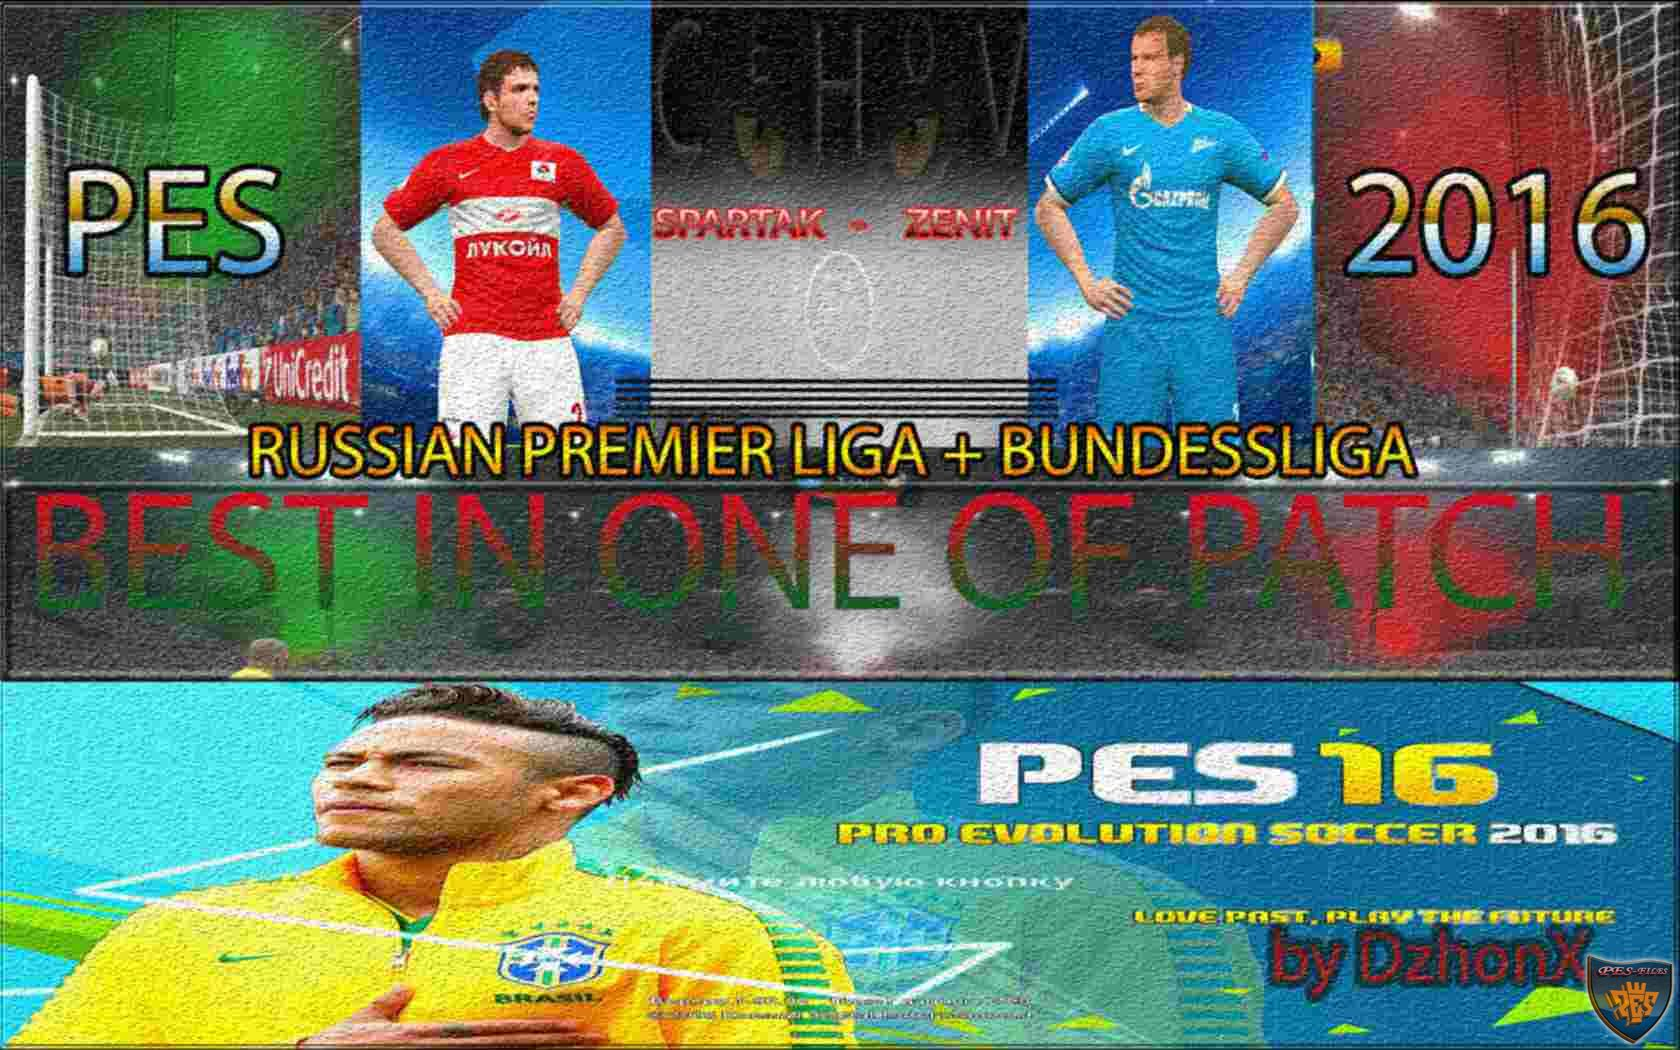 Pes 2016 Best Of One Patch by DzhonX